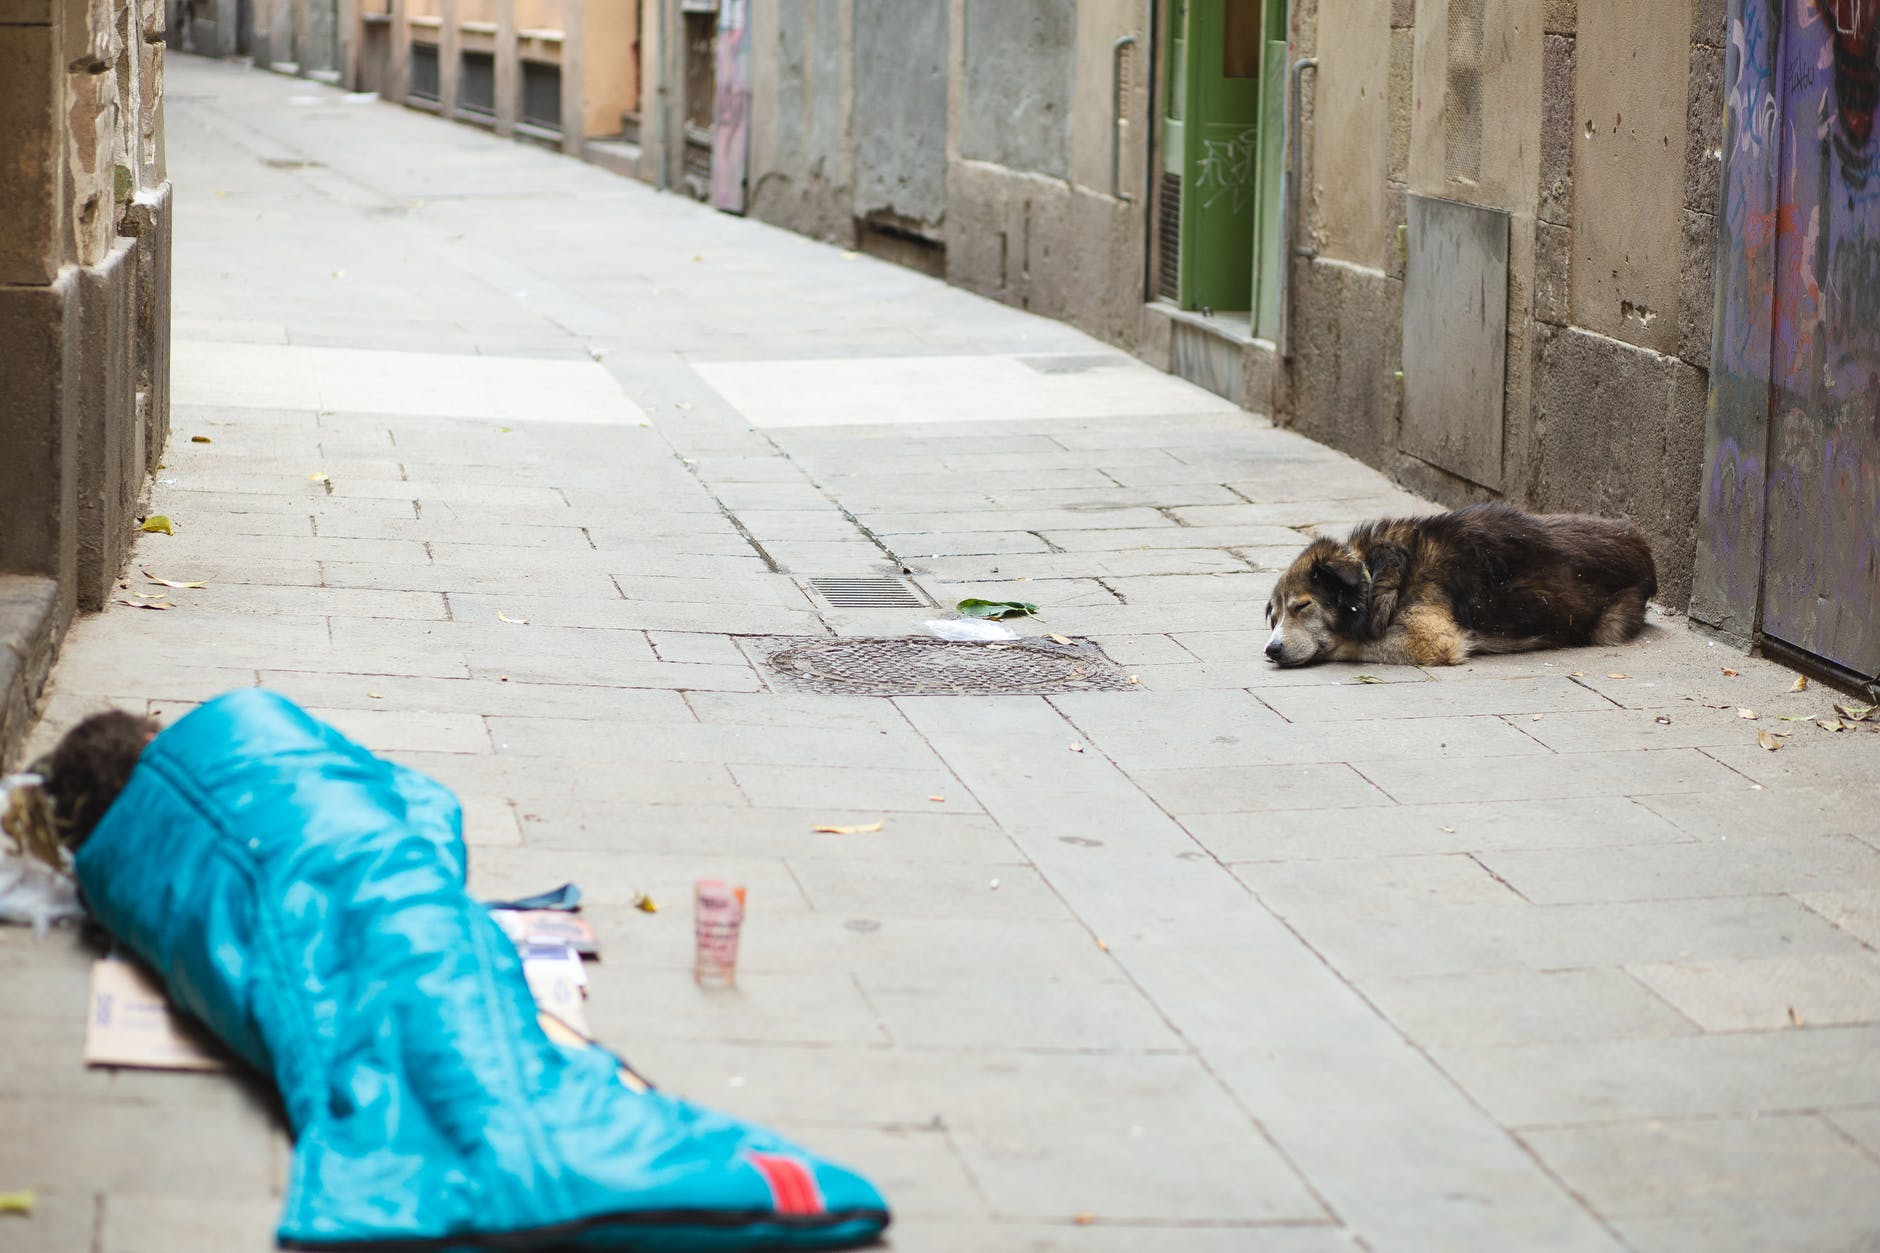 houseless person with dog sleeping on street